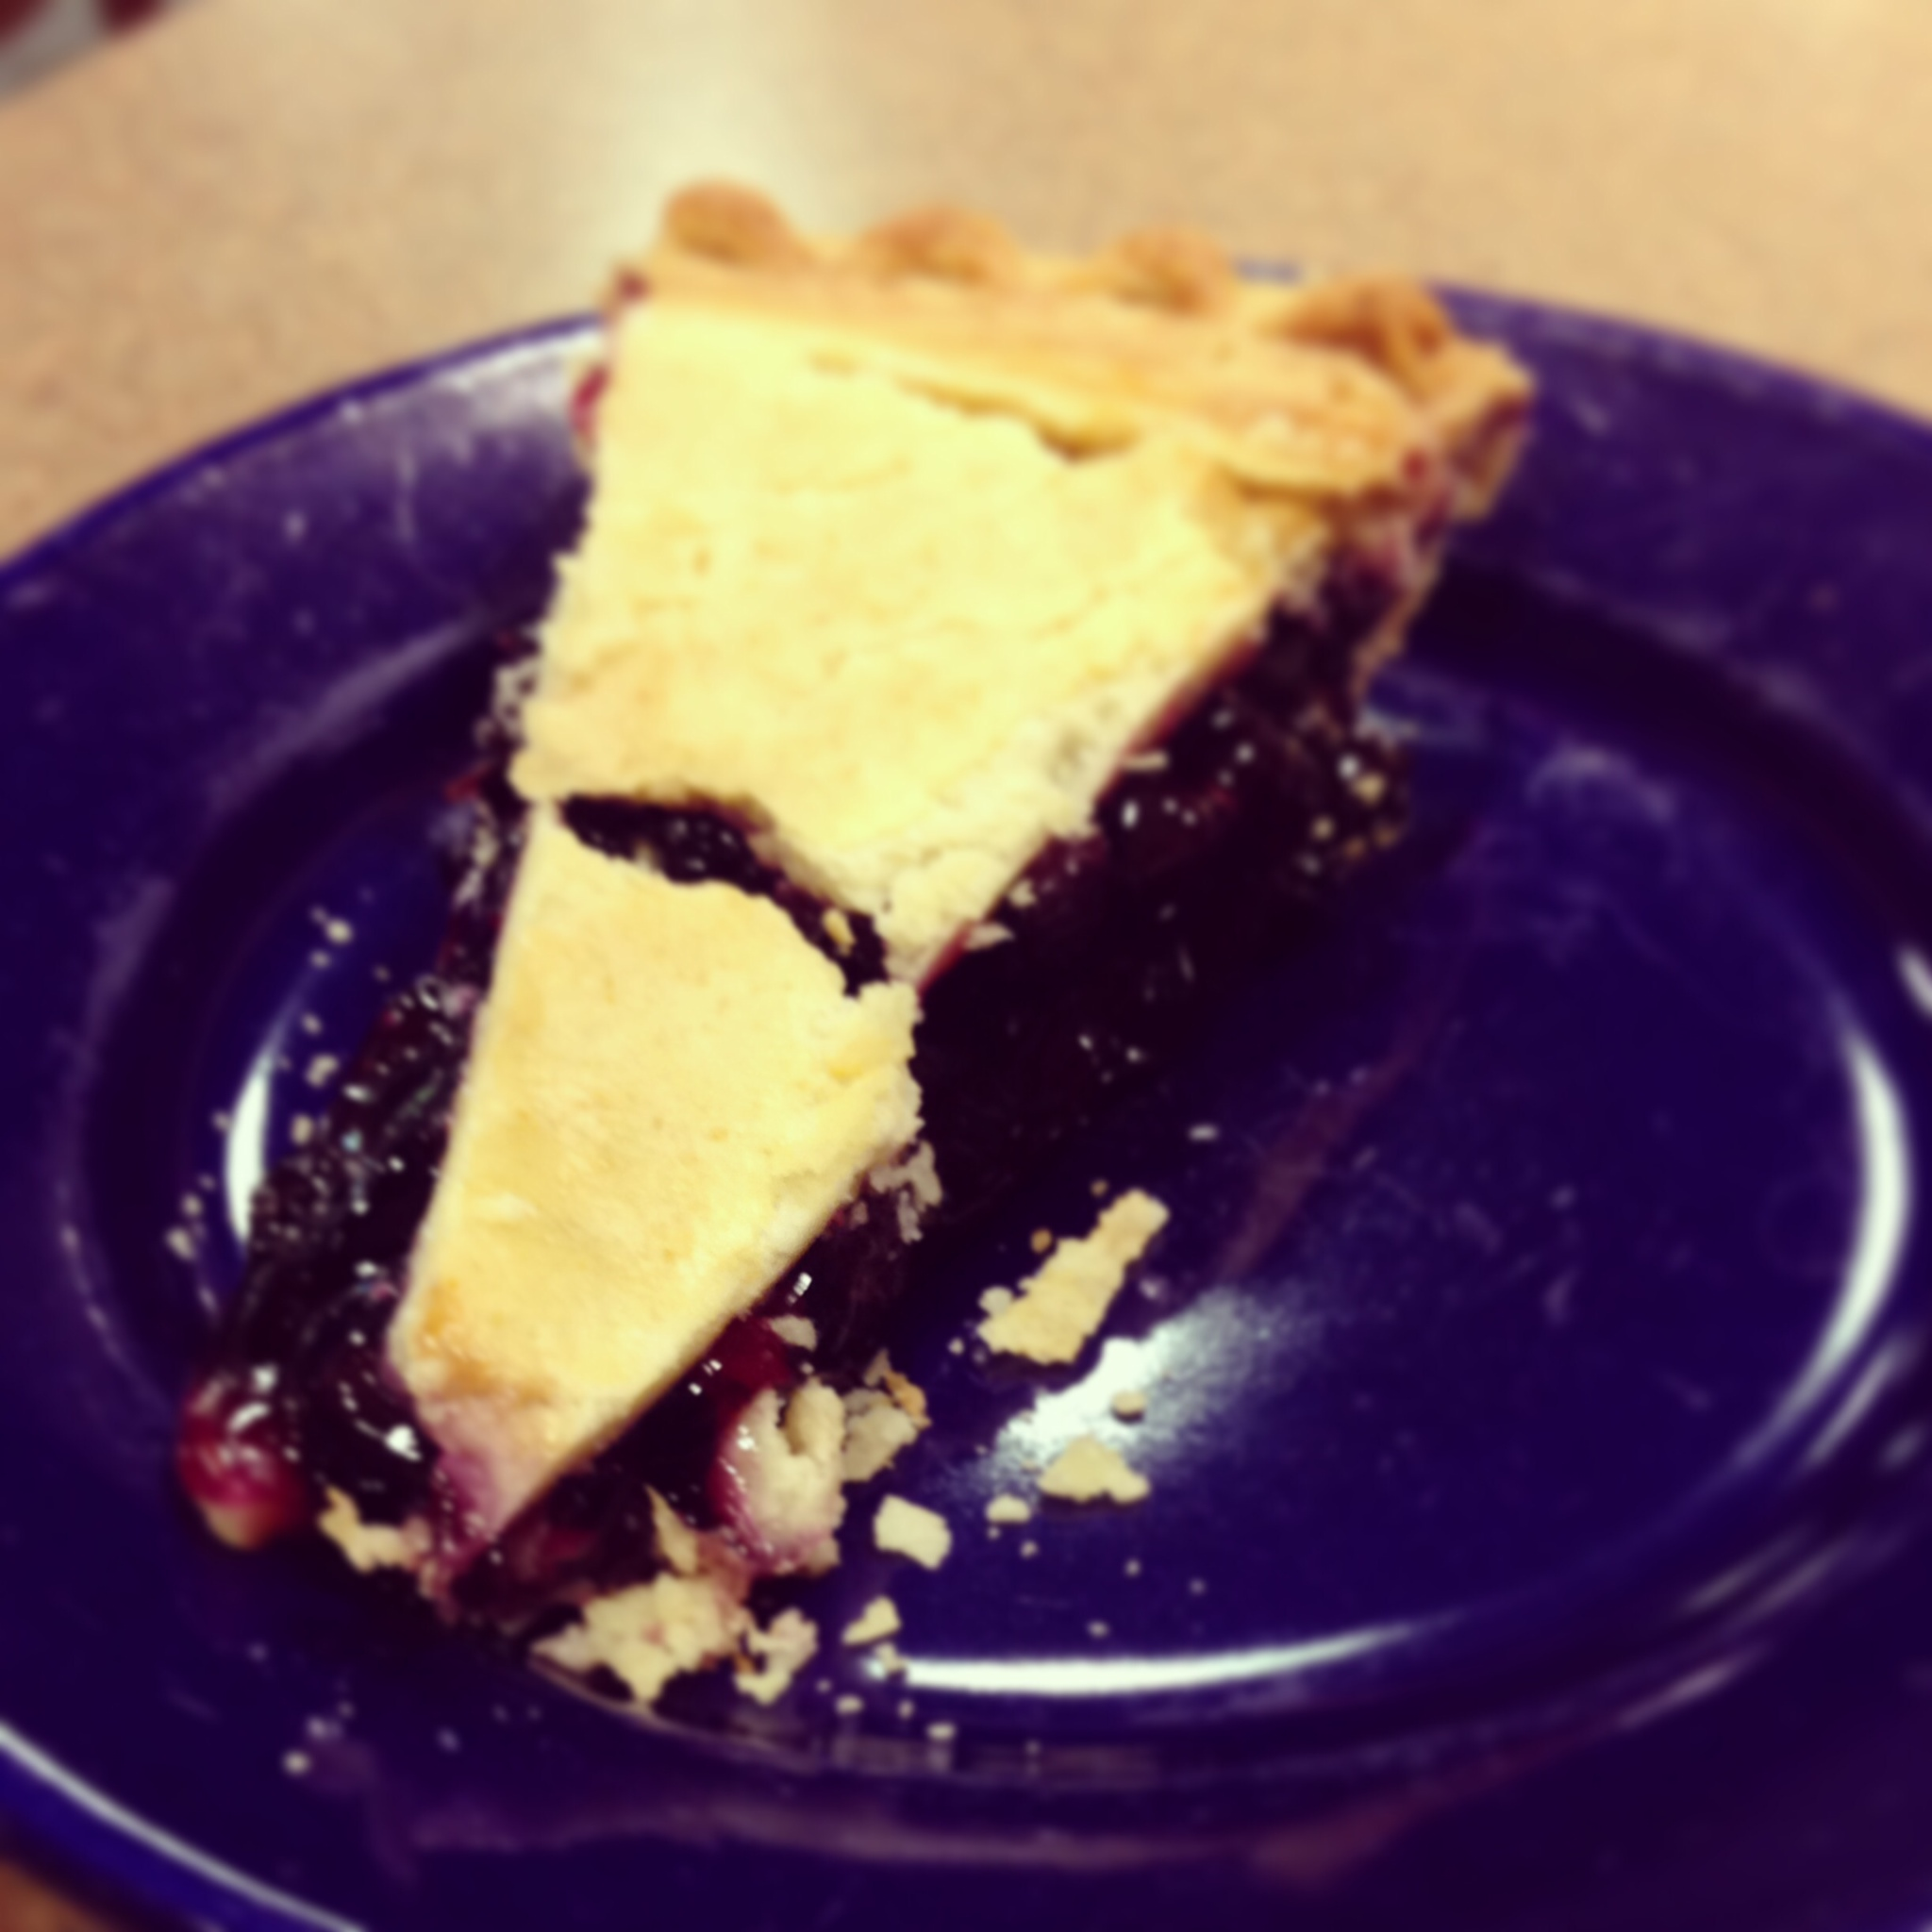 Blueberry pie slice on a blue plate